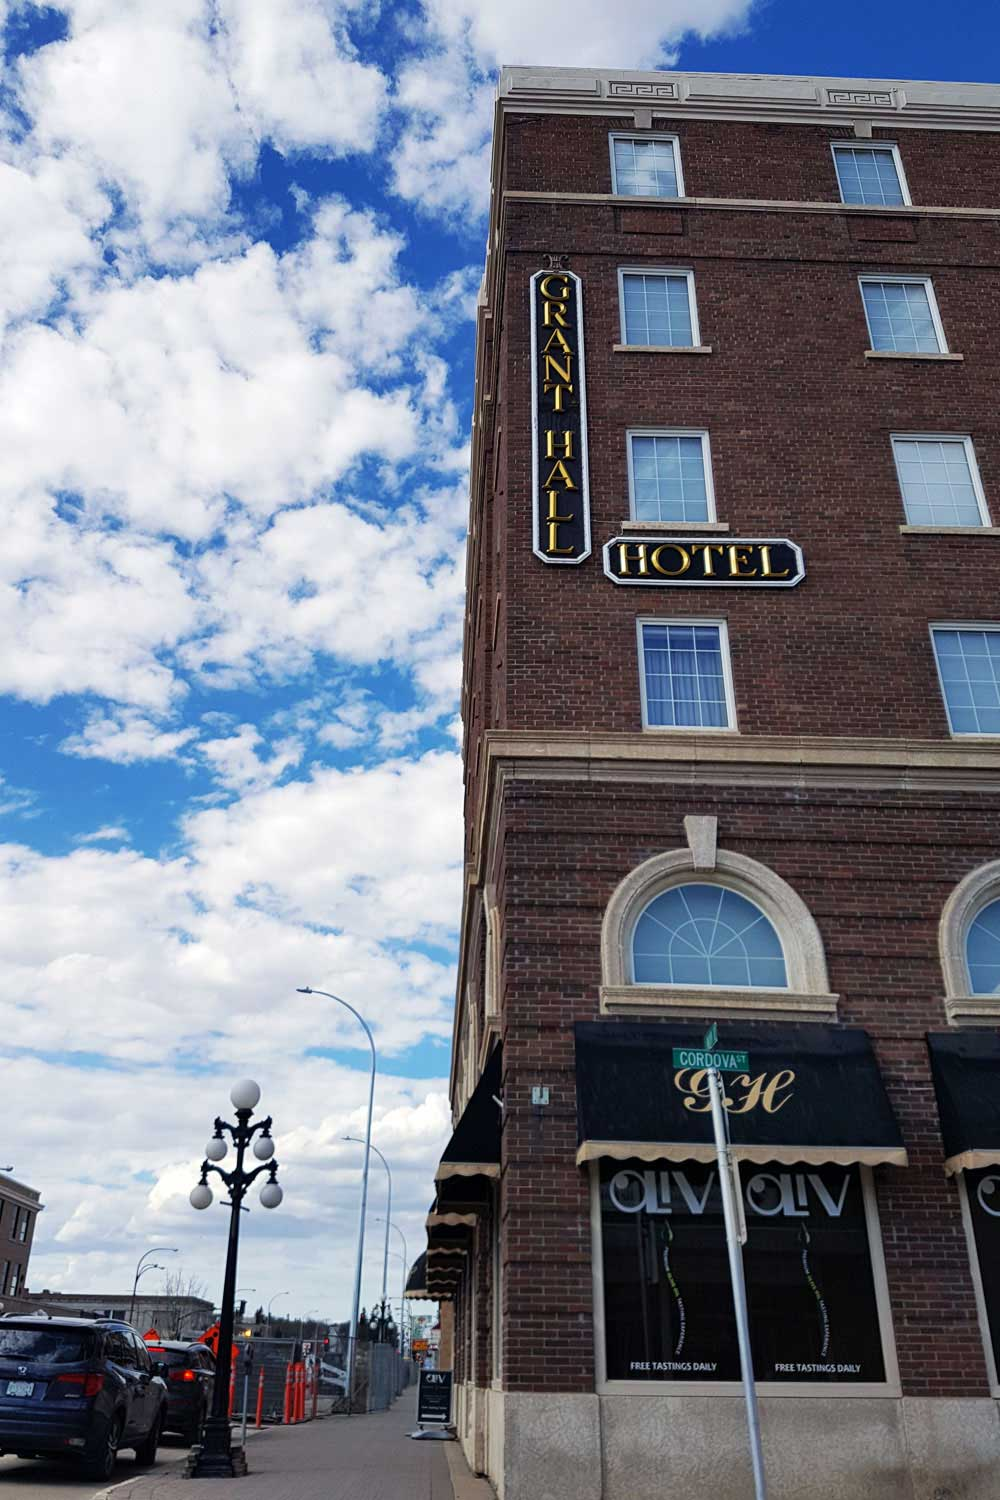 Grant Hall Hotel in Moose Jaw